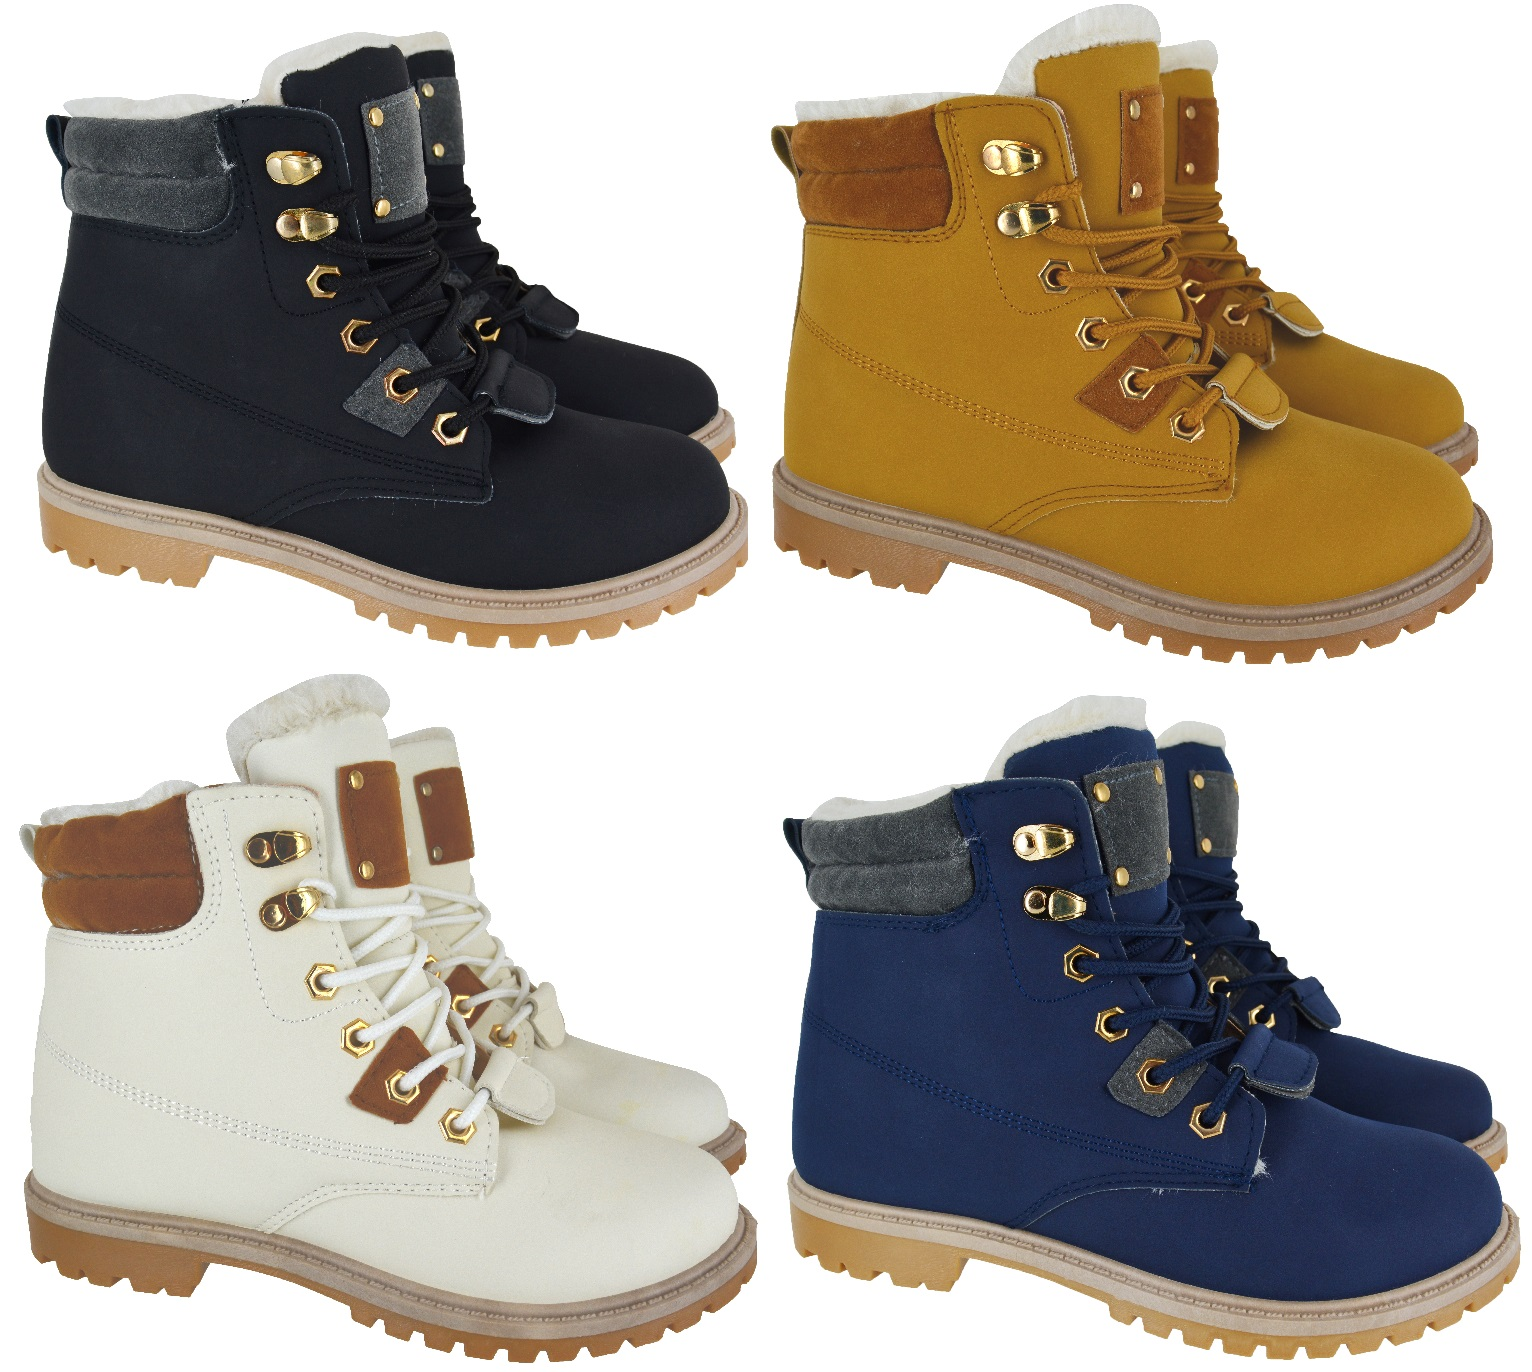 NEW LADIES COMBAT FAUX FUR LINED WARM WINTER ARMY ANKLE SHOES WOMENS BOOTS SIZE